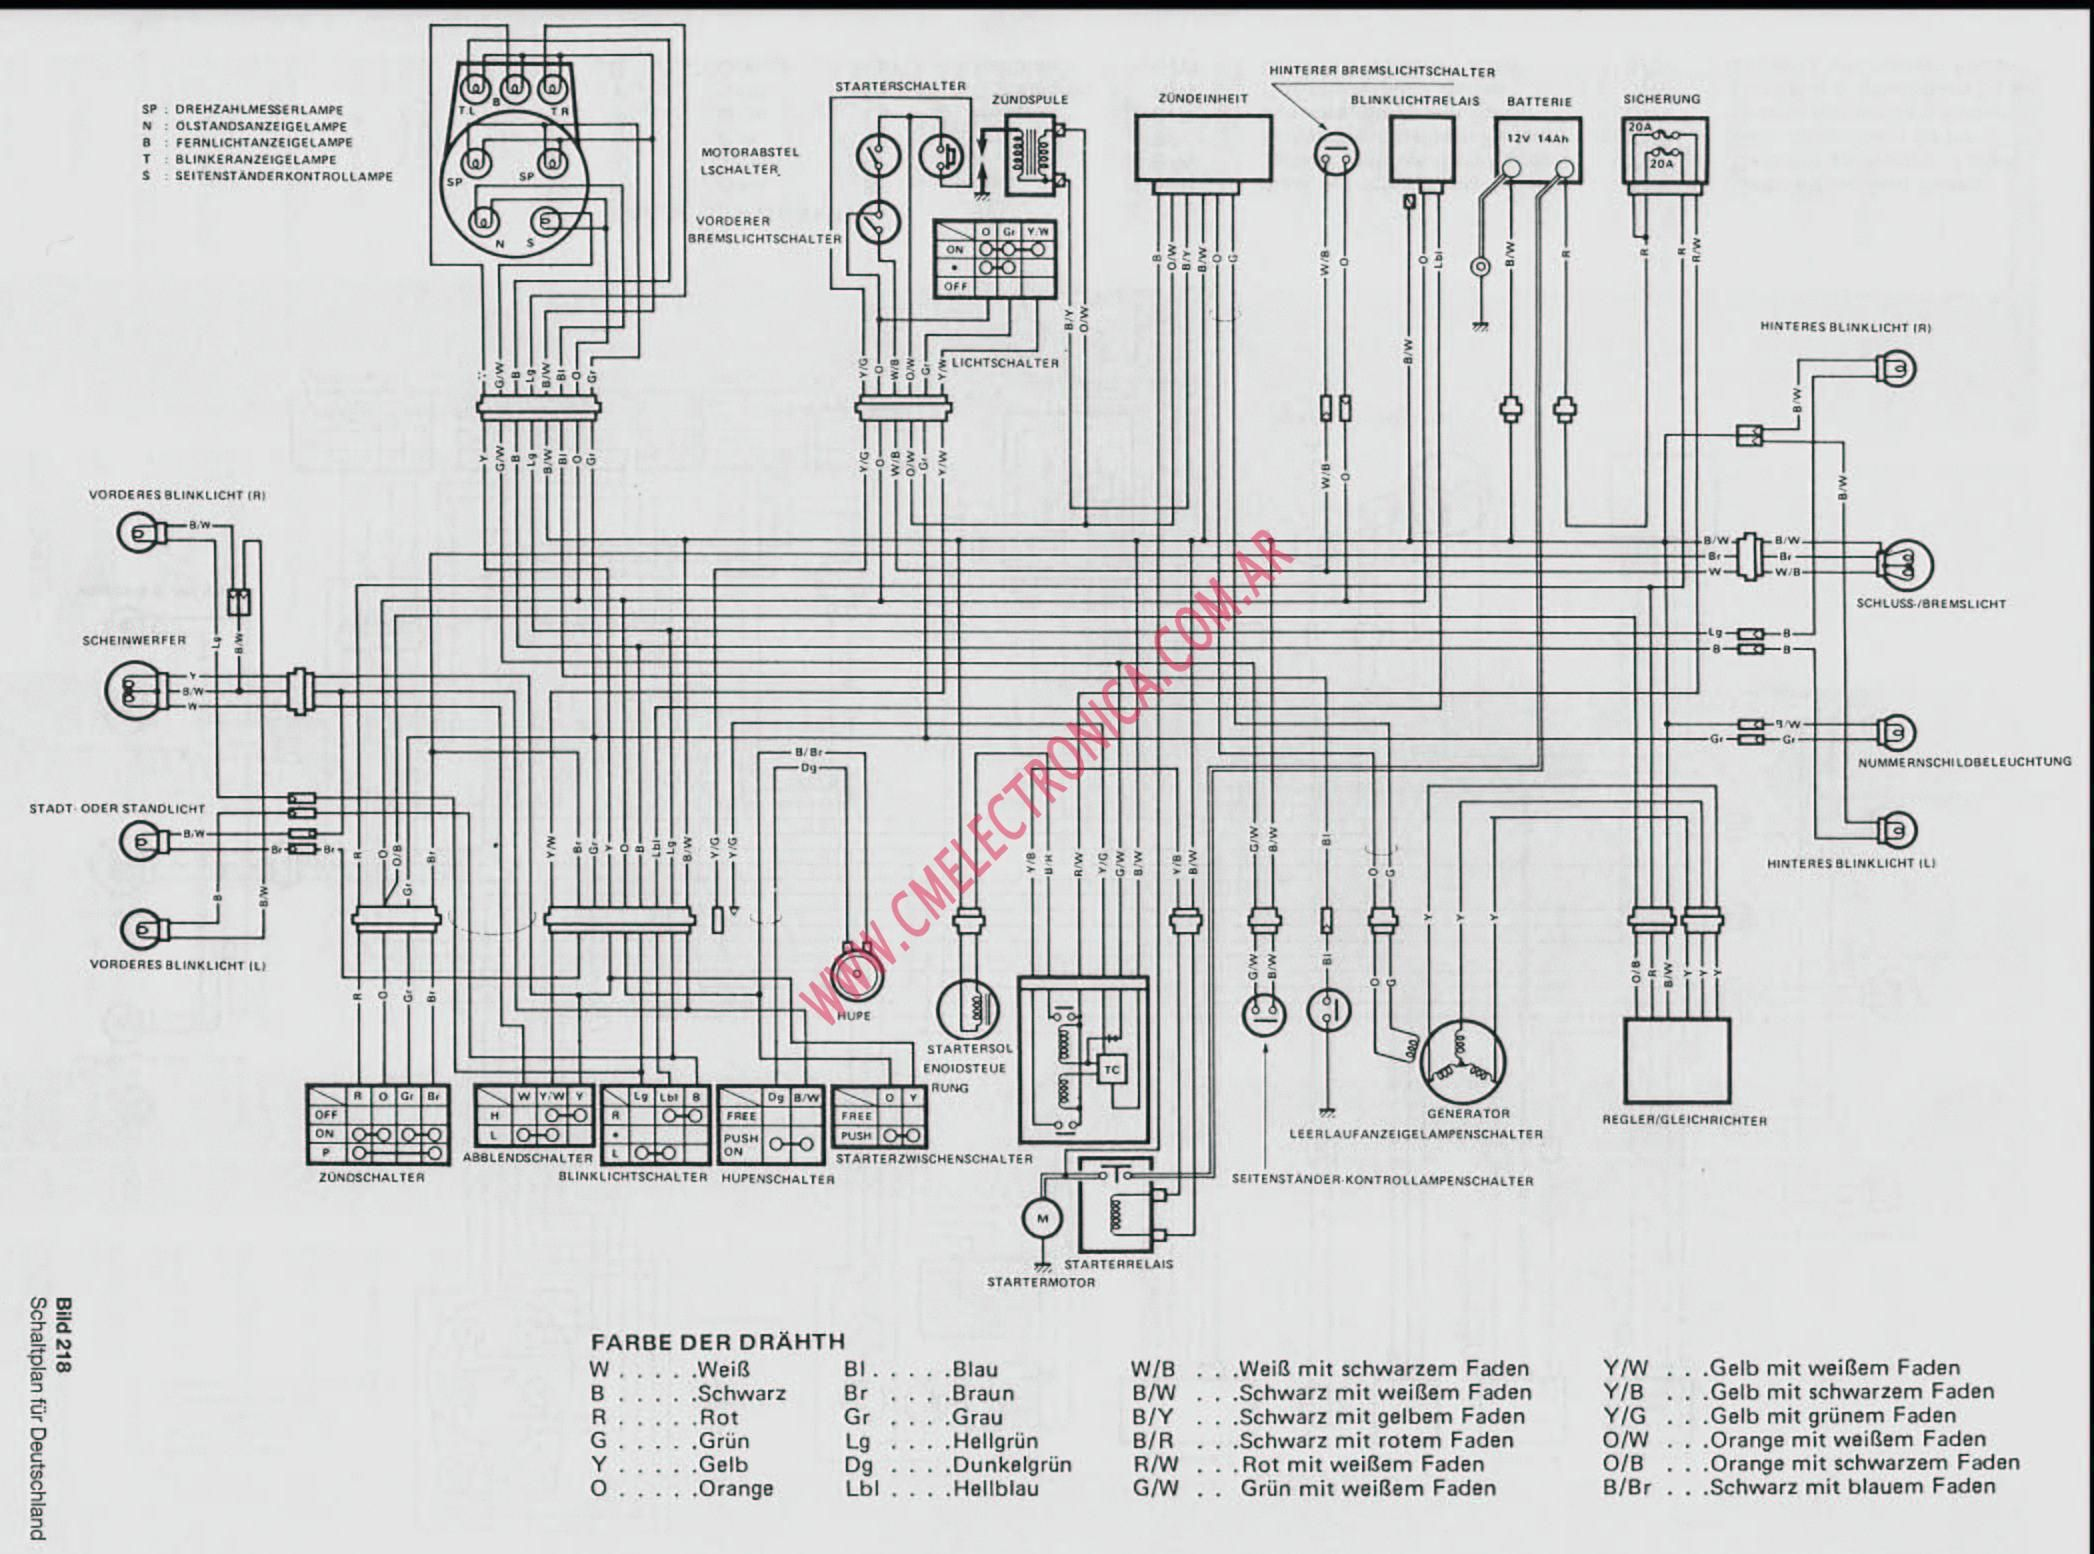 Best of    Diagram       Suzuki    Vl1500    Wiring       Diagram     Millions Ideas    Diagram    And Concept    Wiring       Diagram